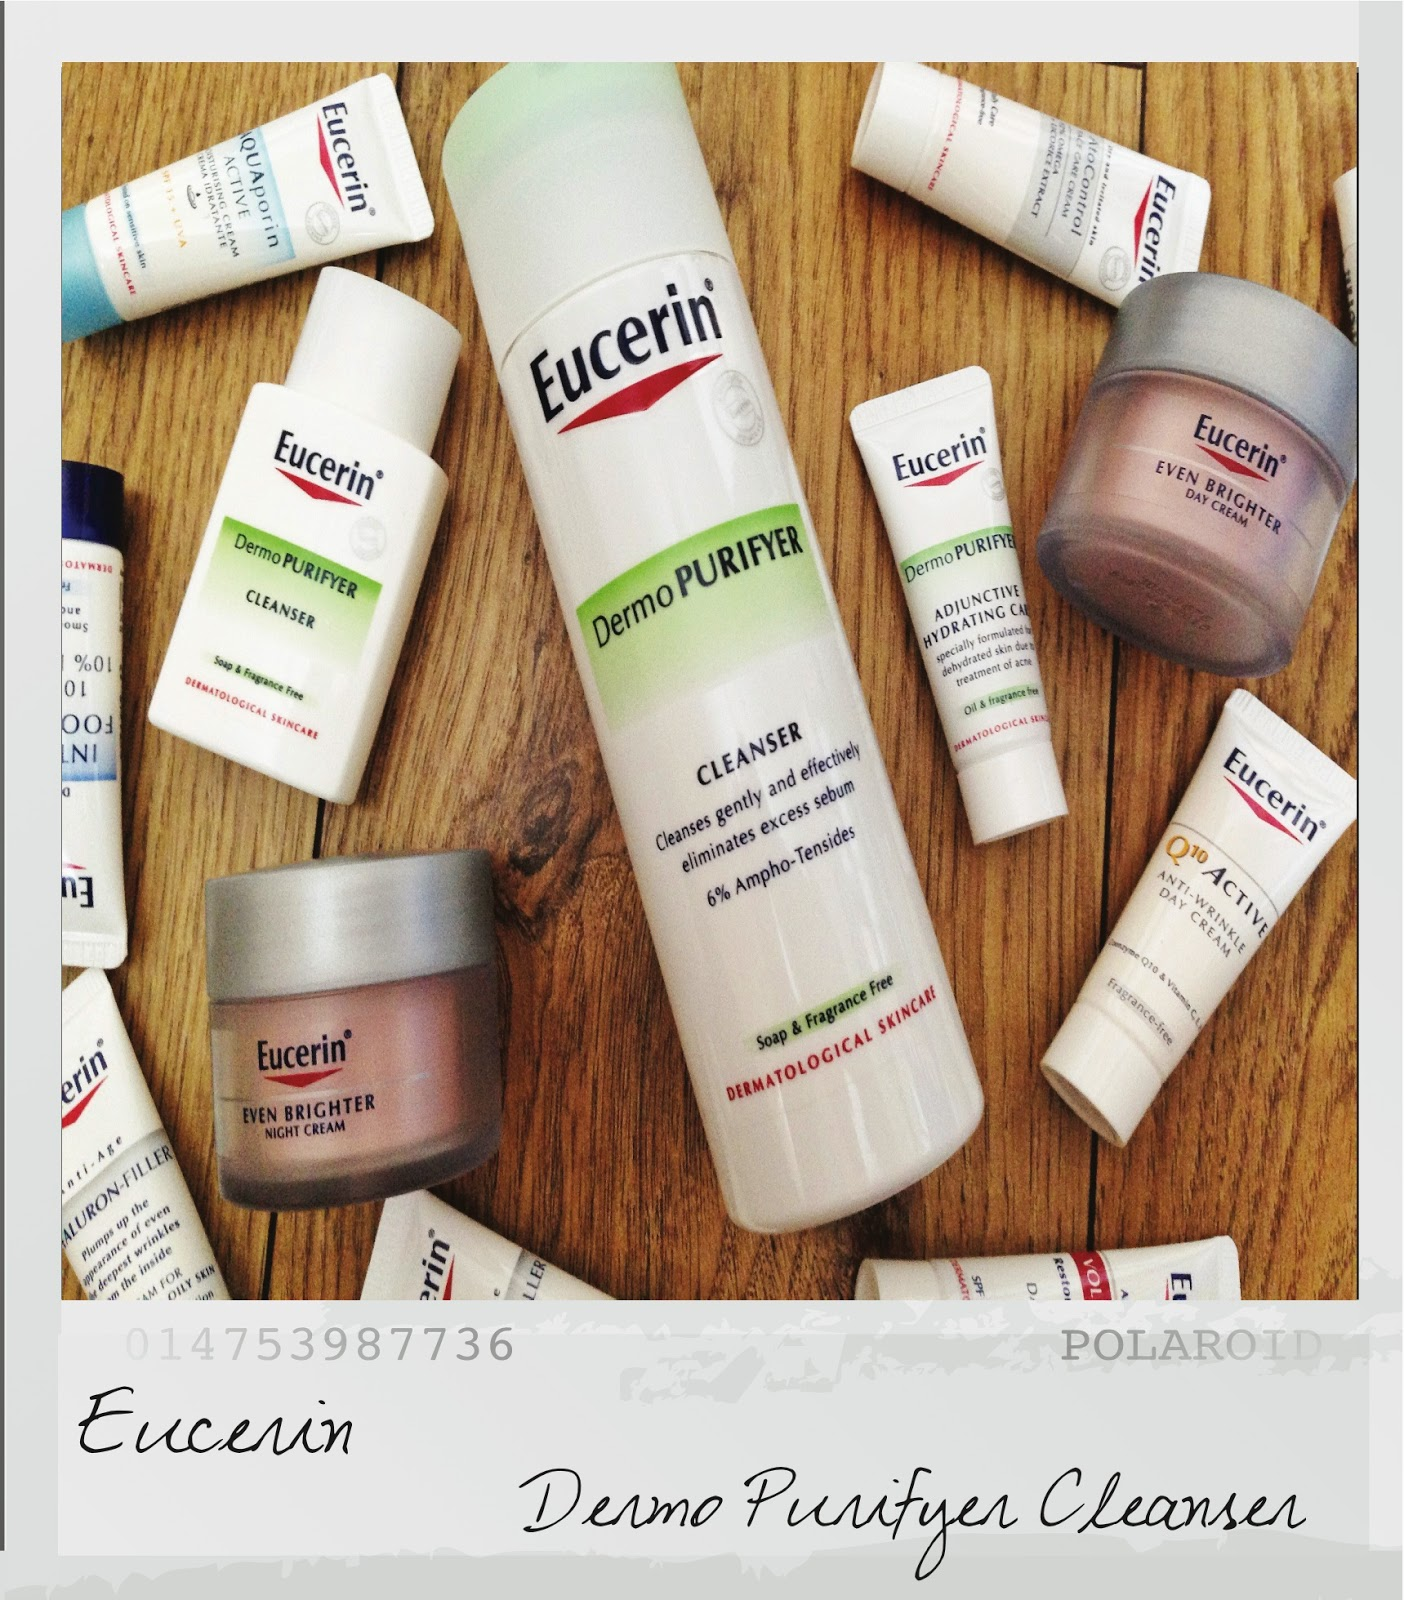 http://www.kellysjournal.co.uk/2014/10/eucerin-dermo-purifyer-cleanser-review.html